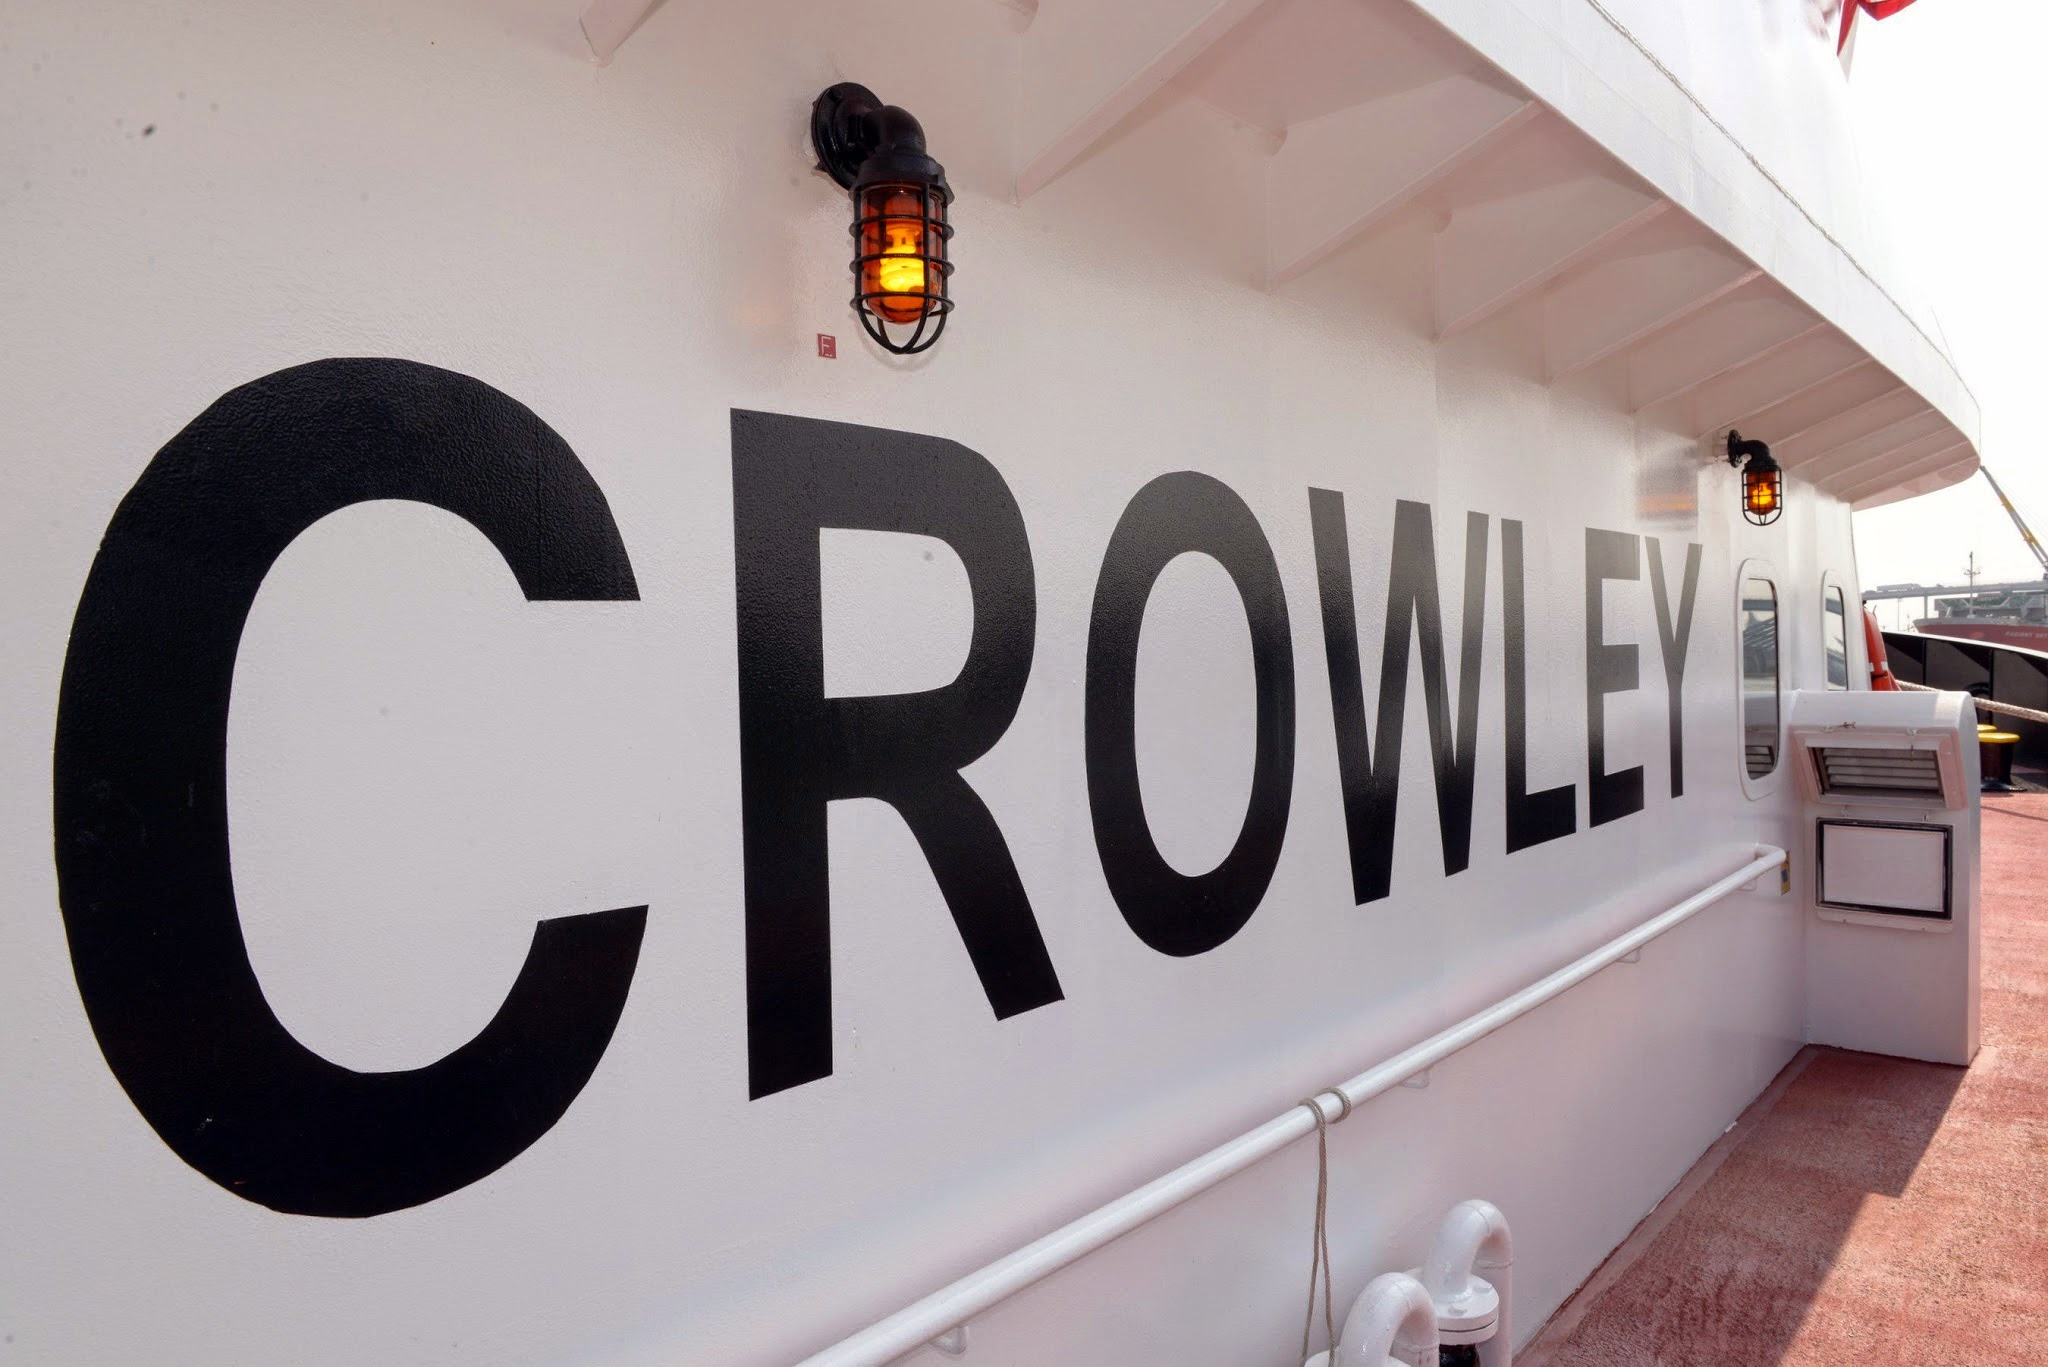 Crowley Liner & Logistics - Warehouse image 0